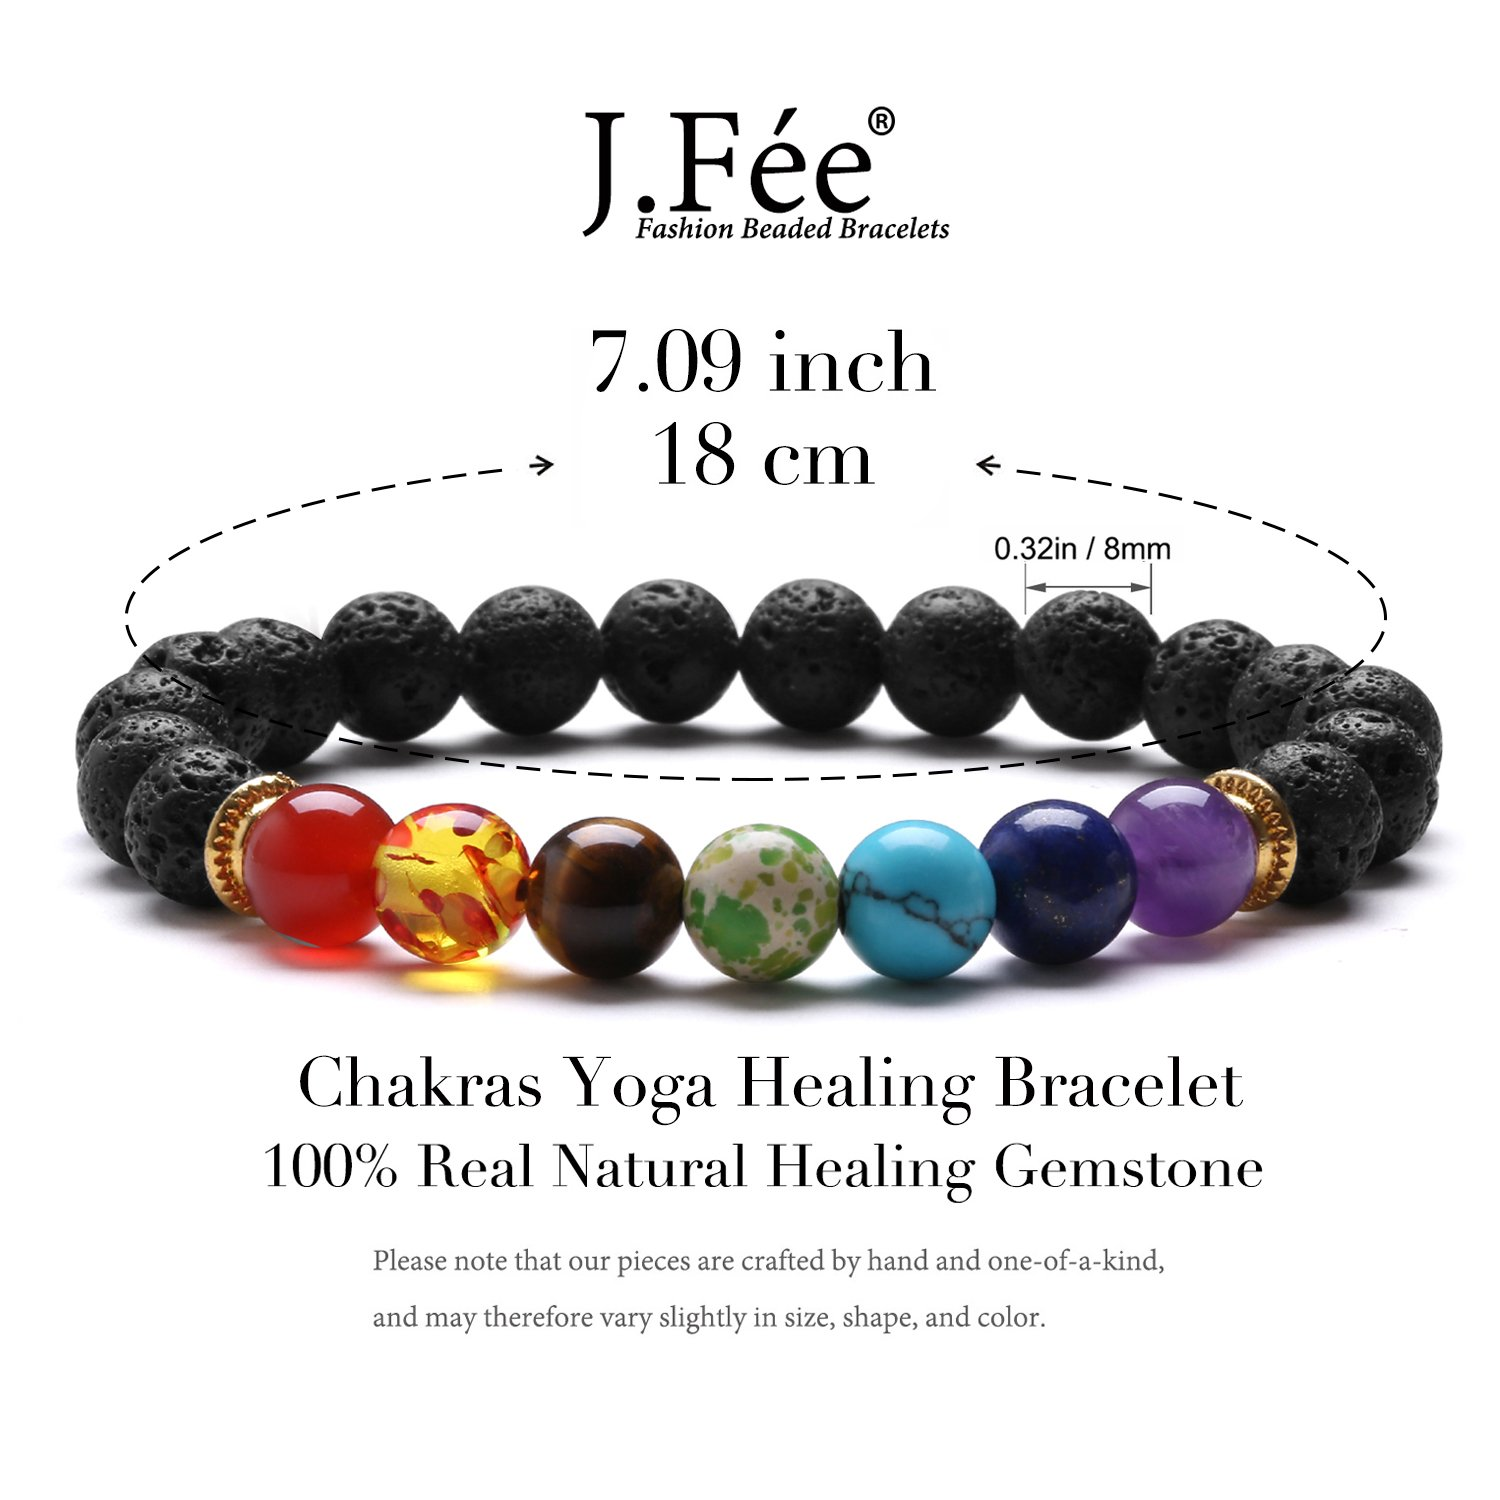 br stones for soothing healing free chakra spiritual jewelry positive anxiety bracelet multi p focus product reiki balance